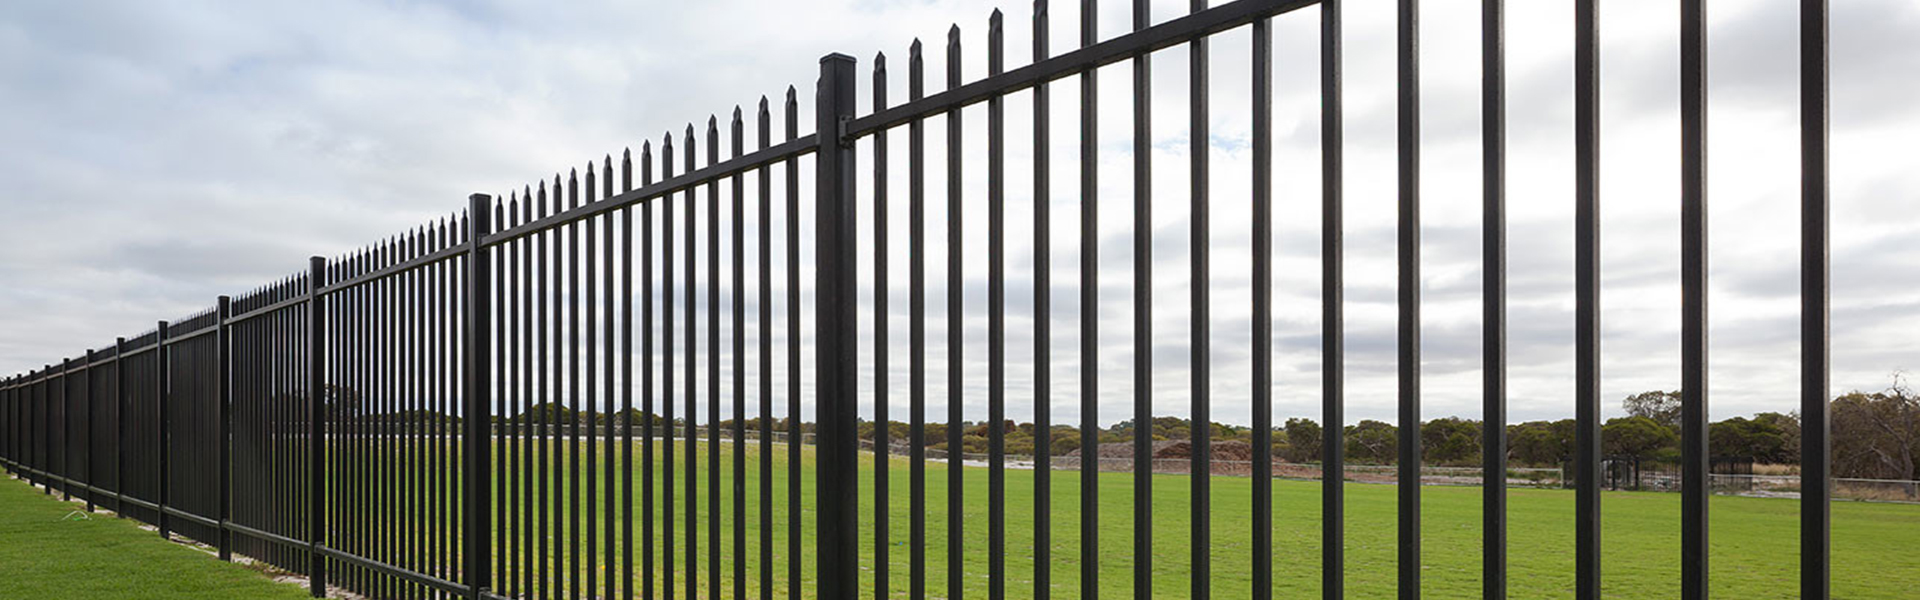 Galvanized-steel-Fence